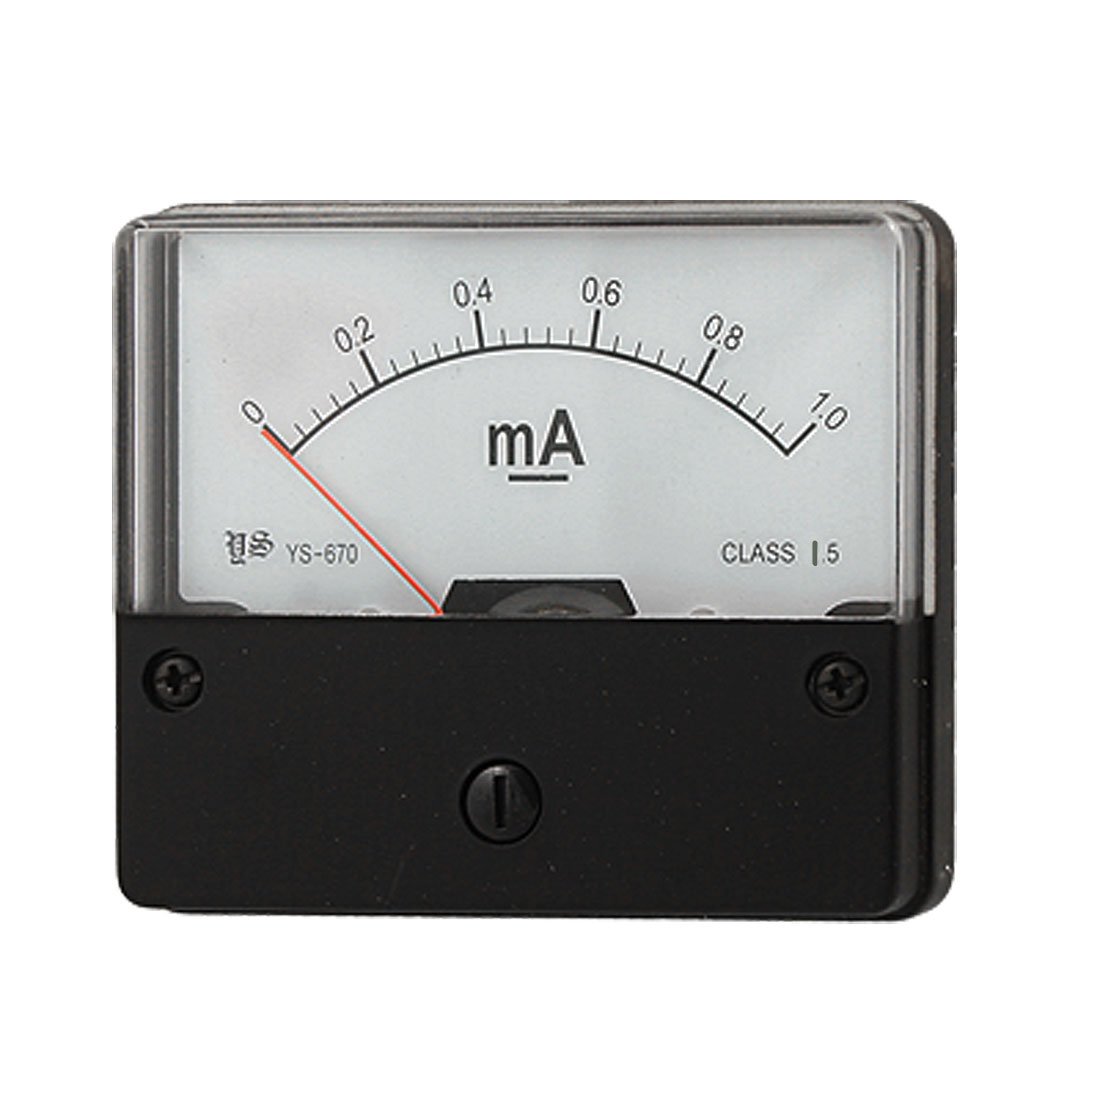 Plastic Housing DC 0-1mA Analogue Display Current Panel Meter Tool